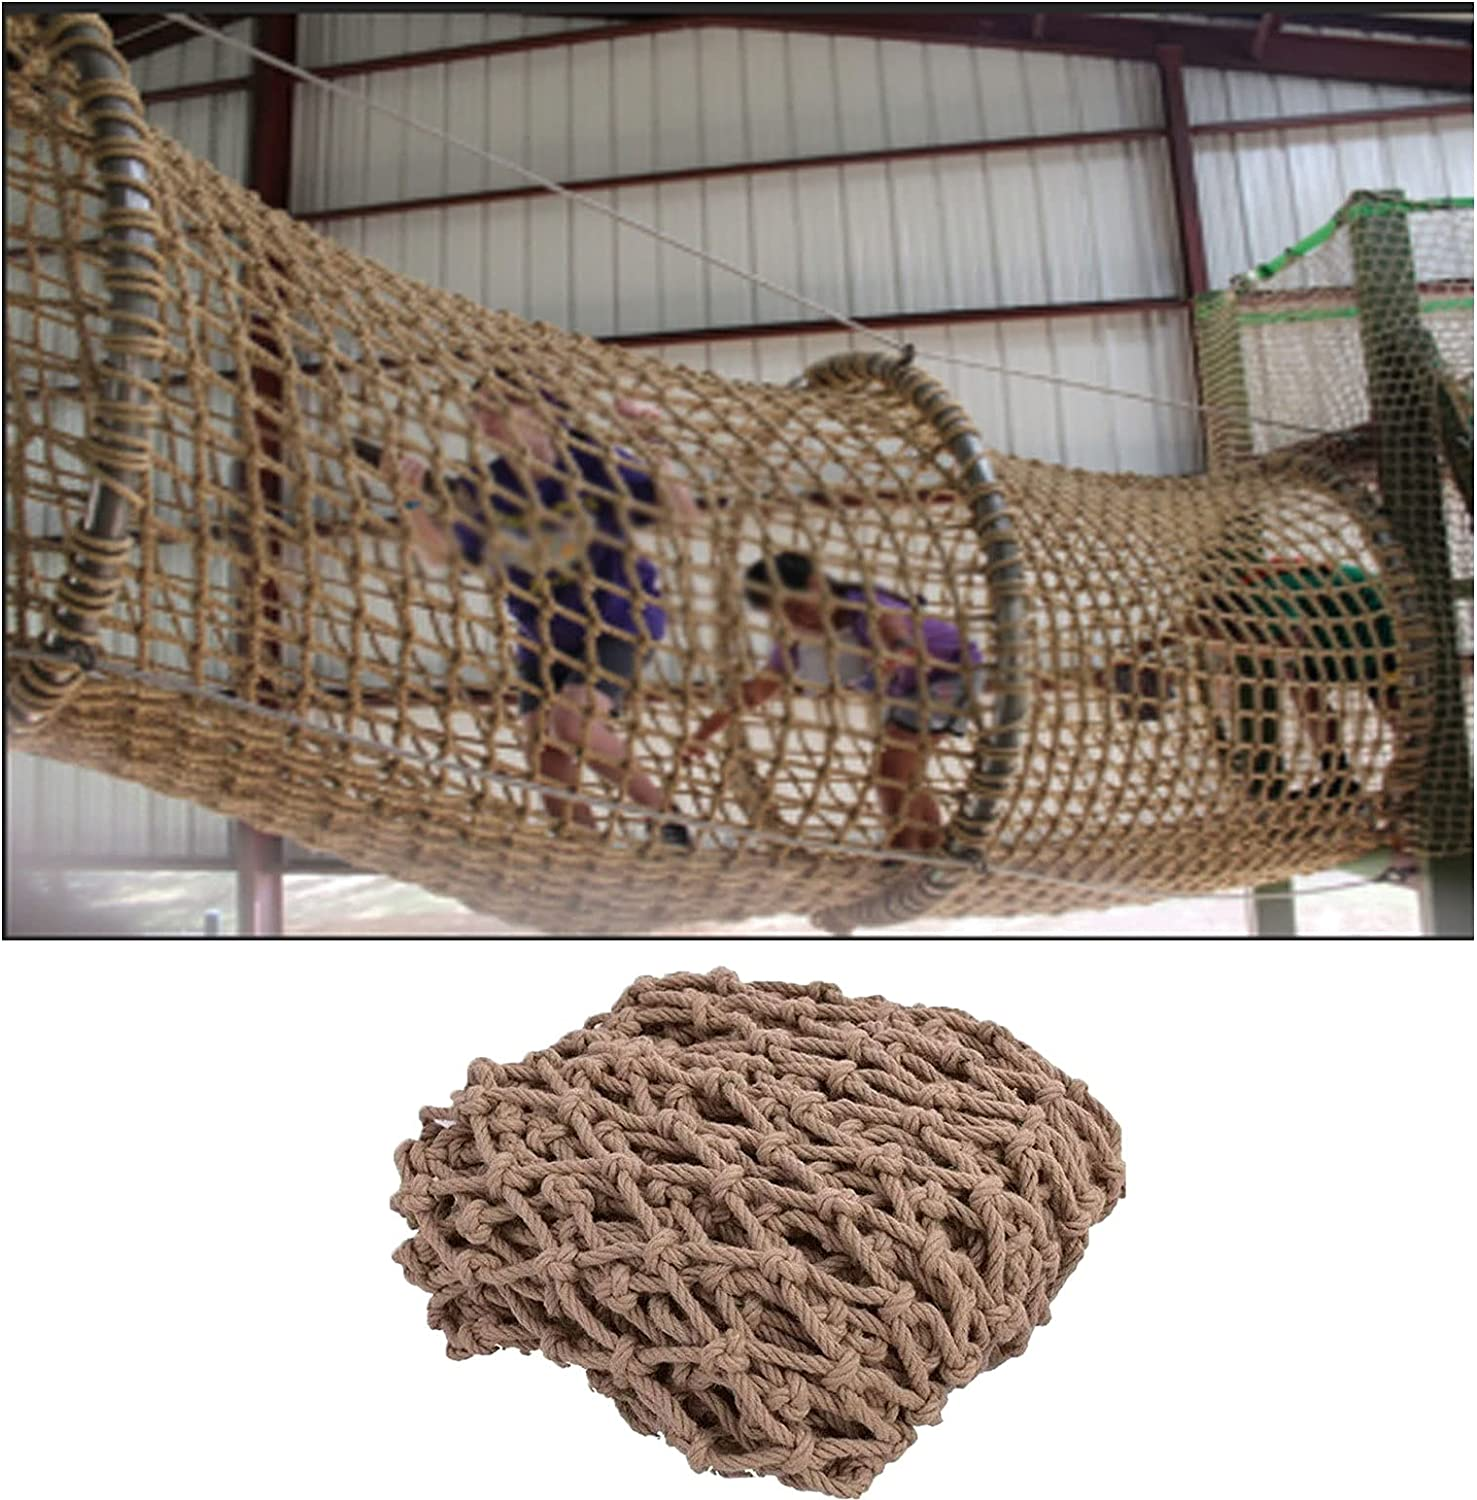 Climbing Net Popular products Direct sale of manufacturer for Kids Playground Hemp Rope Safety Decor